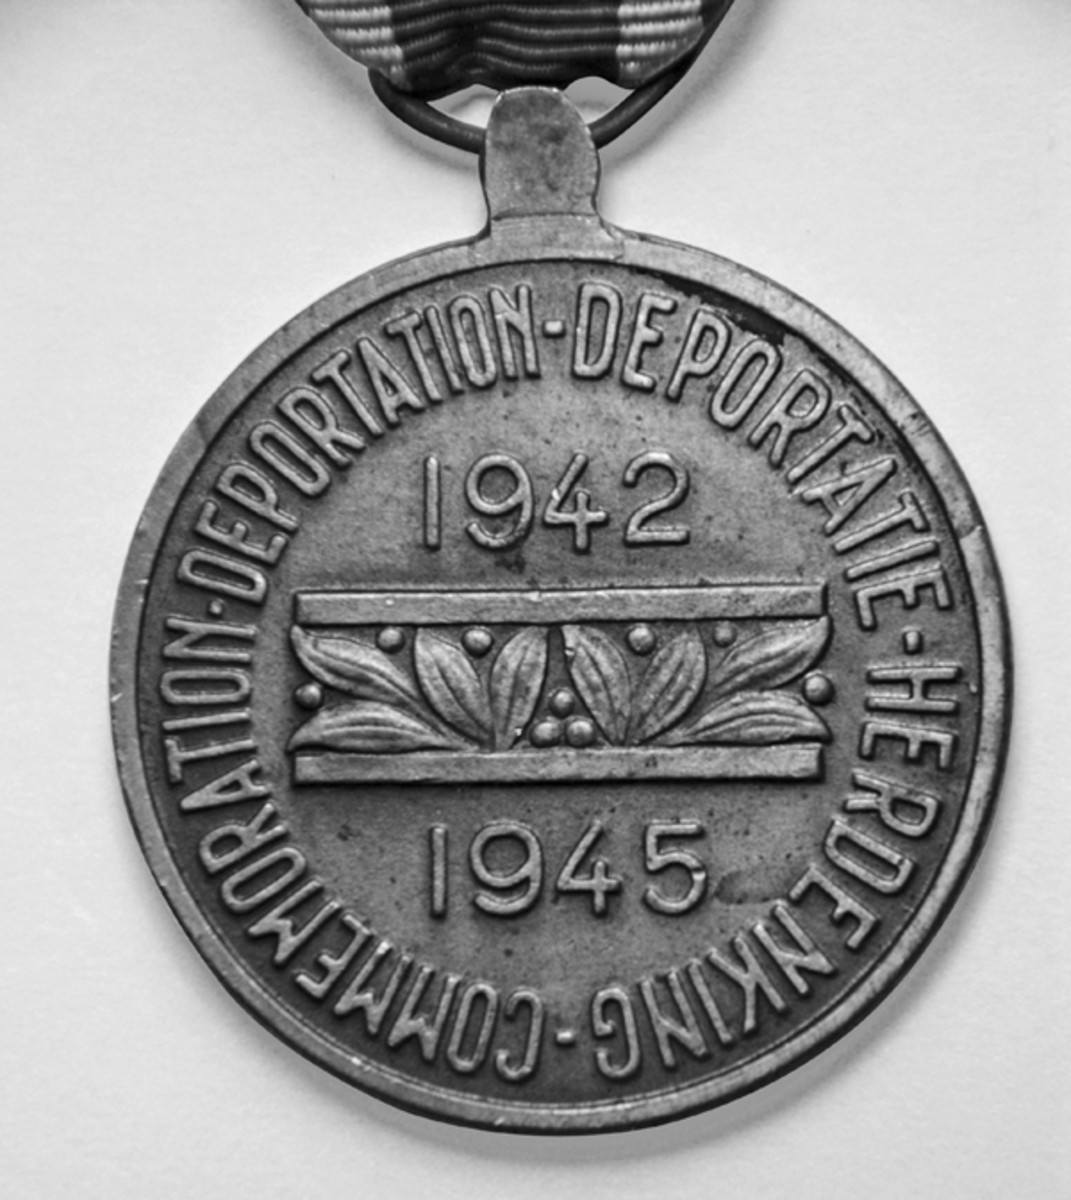 The name of the medal in English and Belgian describing what it represents.